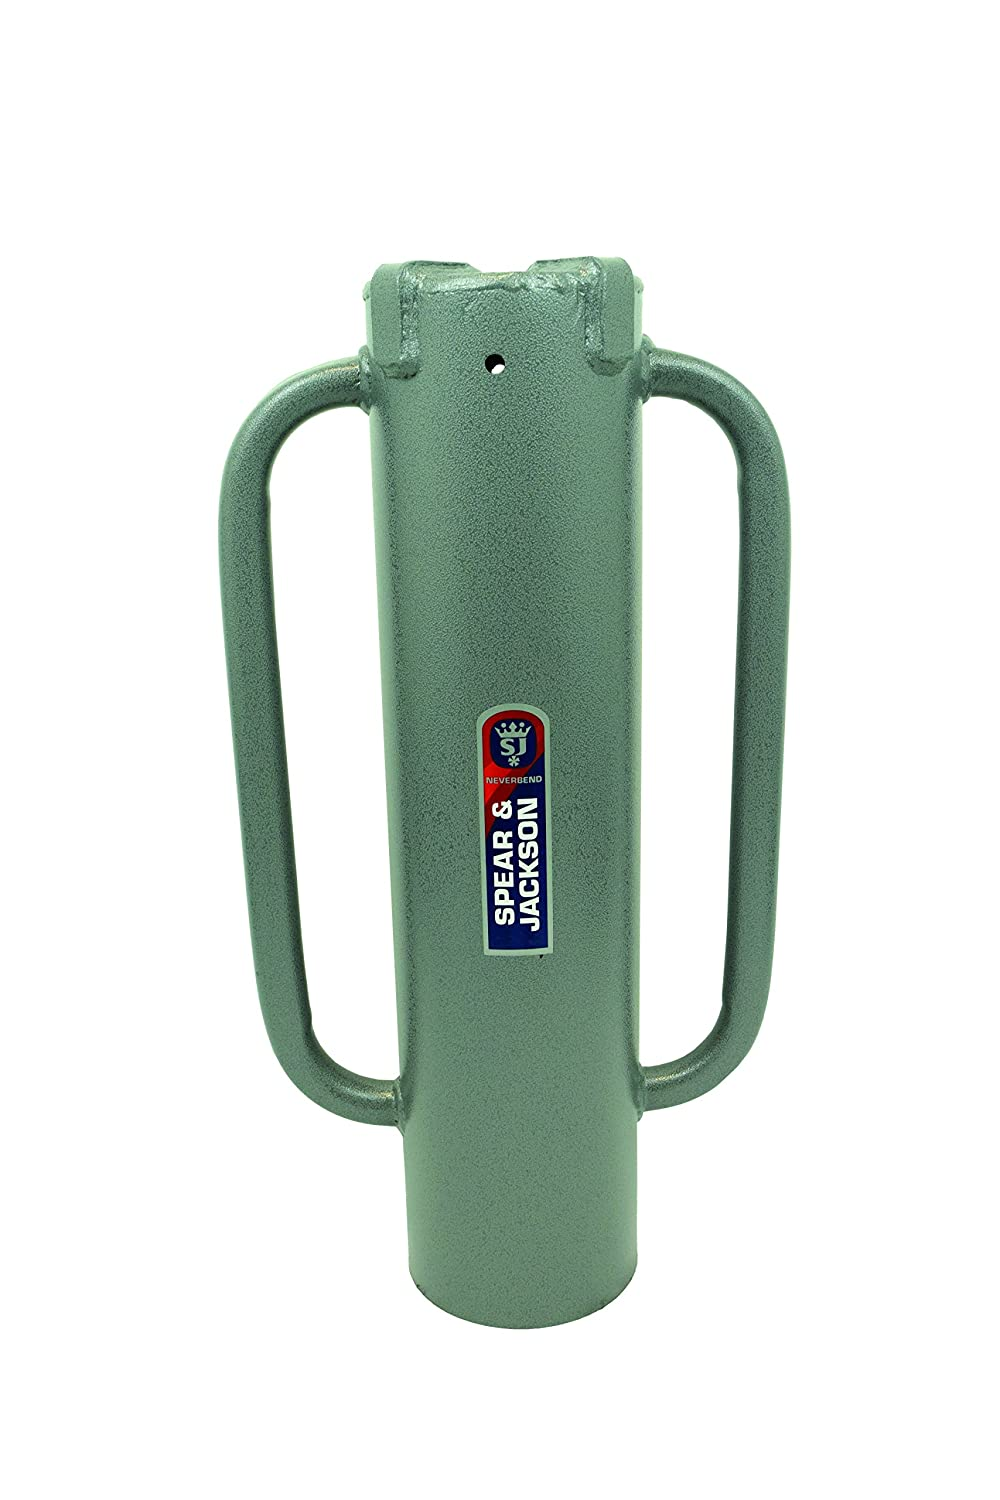 Spear & Jackson PHR5 Landscaping and Fencing Post Hole Rammer, Black